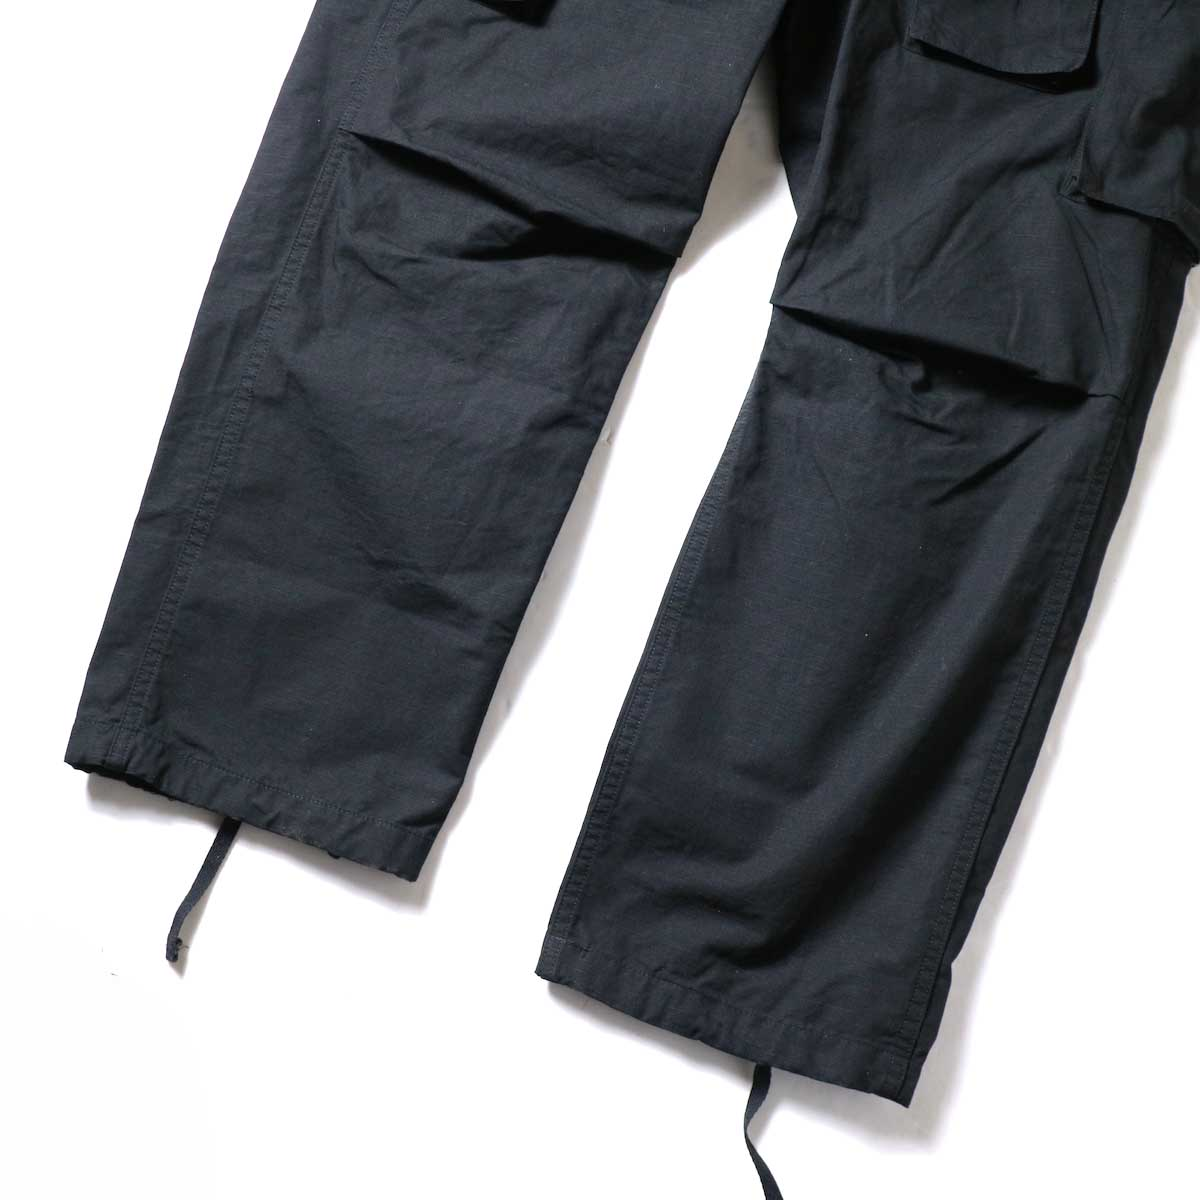 ENGINEERED GARMENTS / FA Pant - Cotton Ripstop (Black)裾